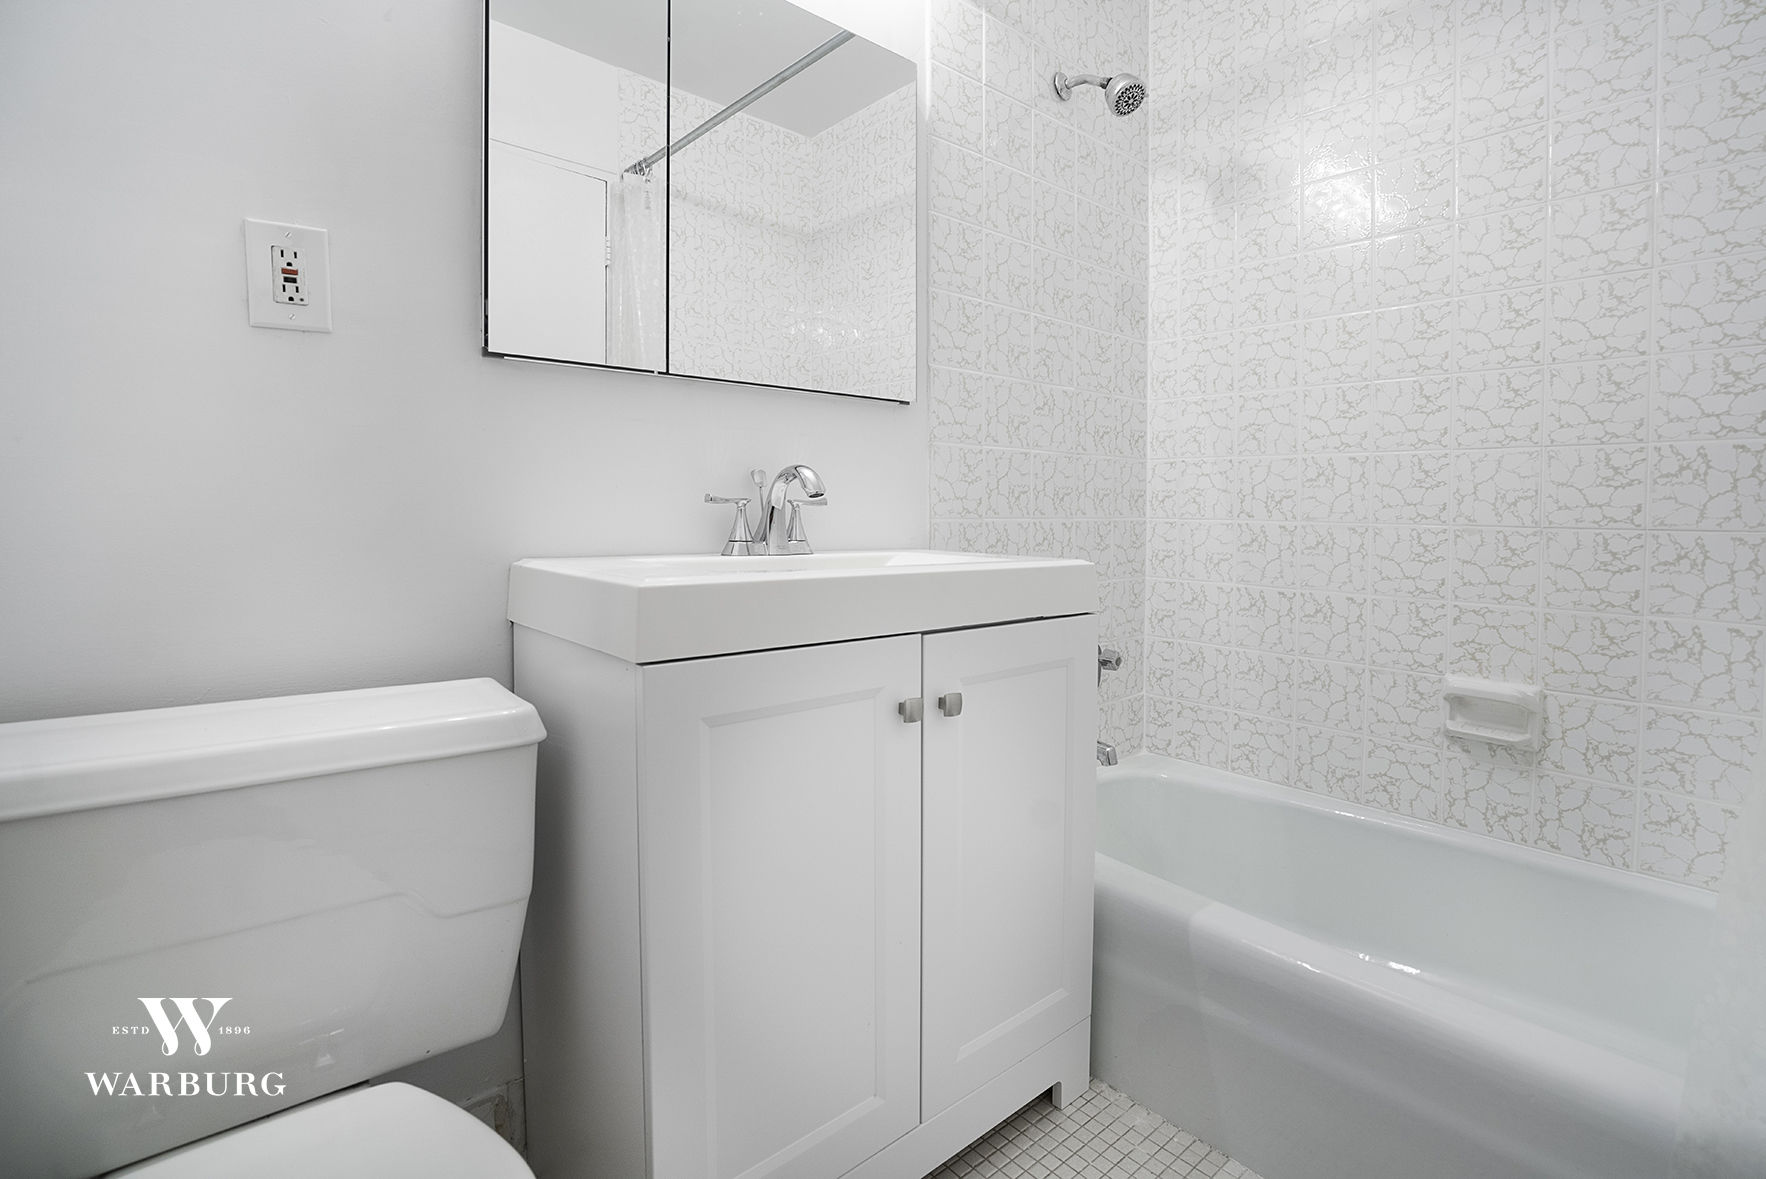 301 East 79th Street, Apt 29 K Photo 5 - WR-3009366